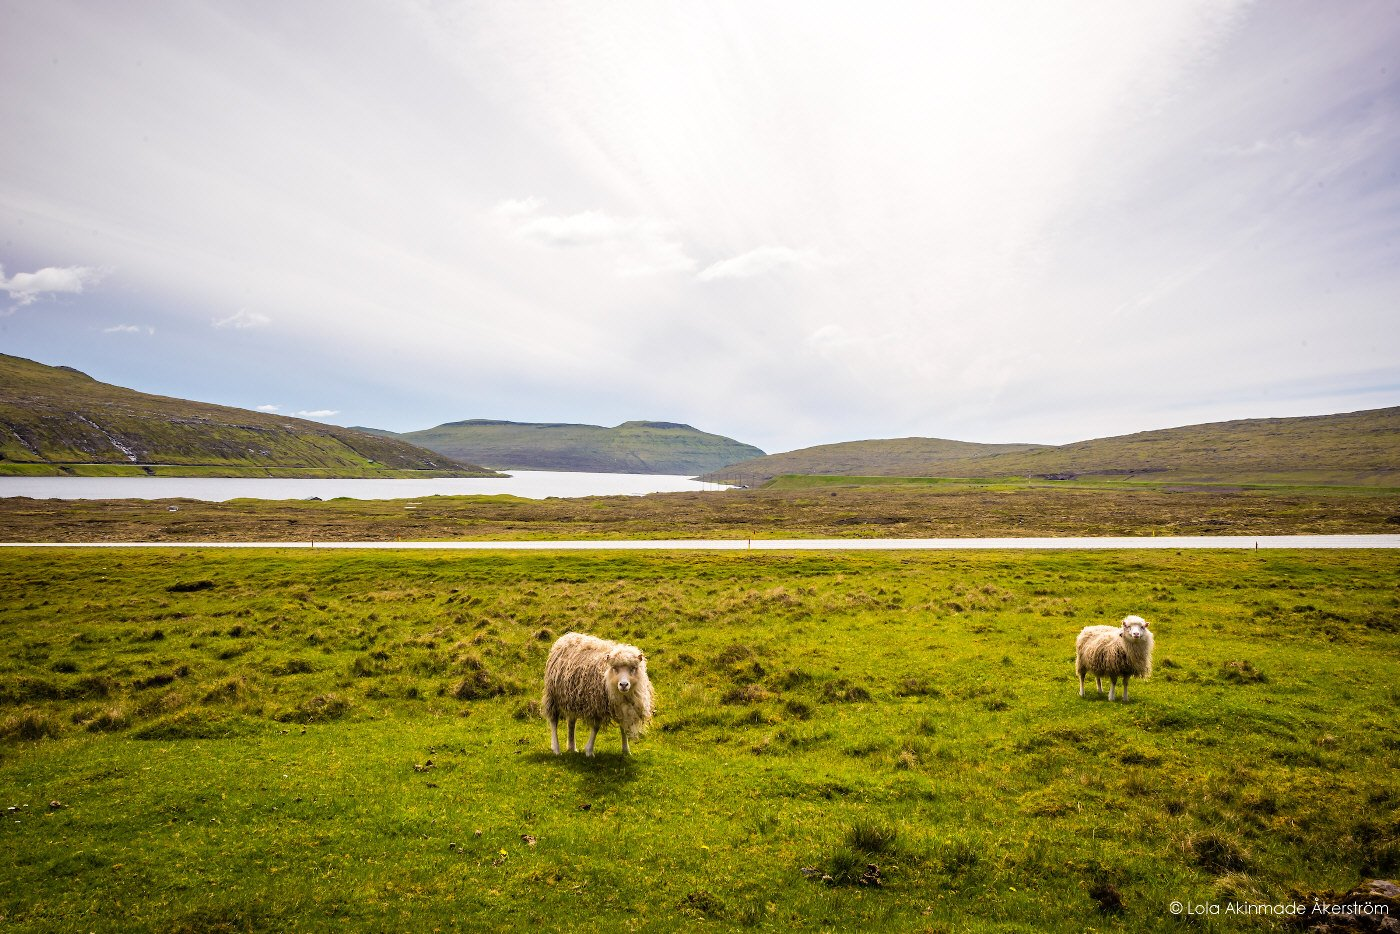 Photos from the Faroe Islands